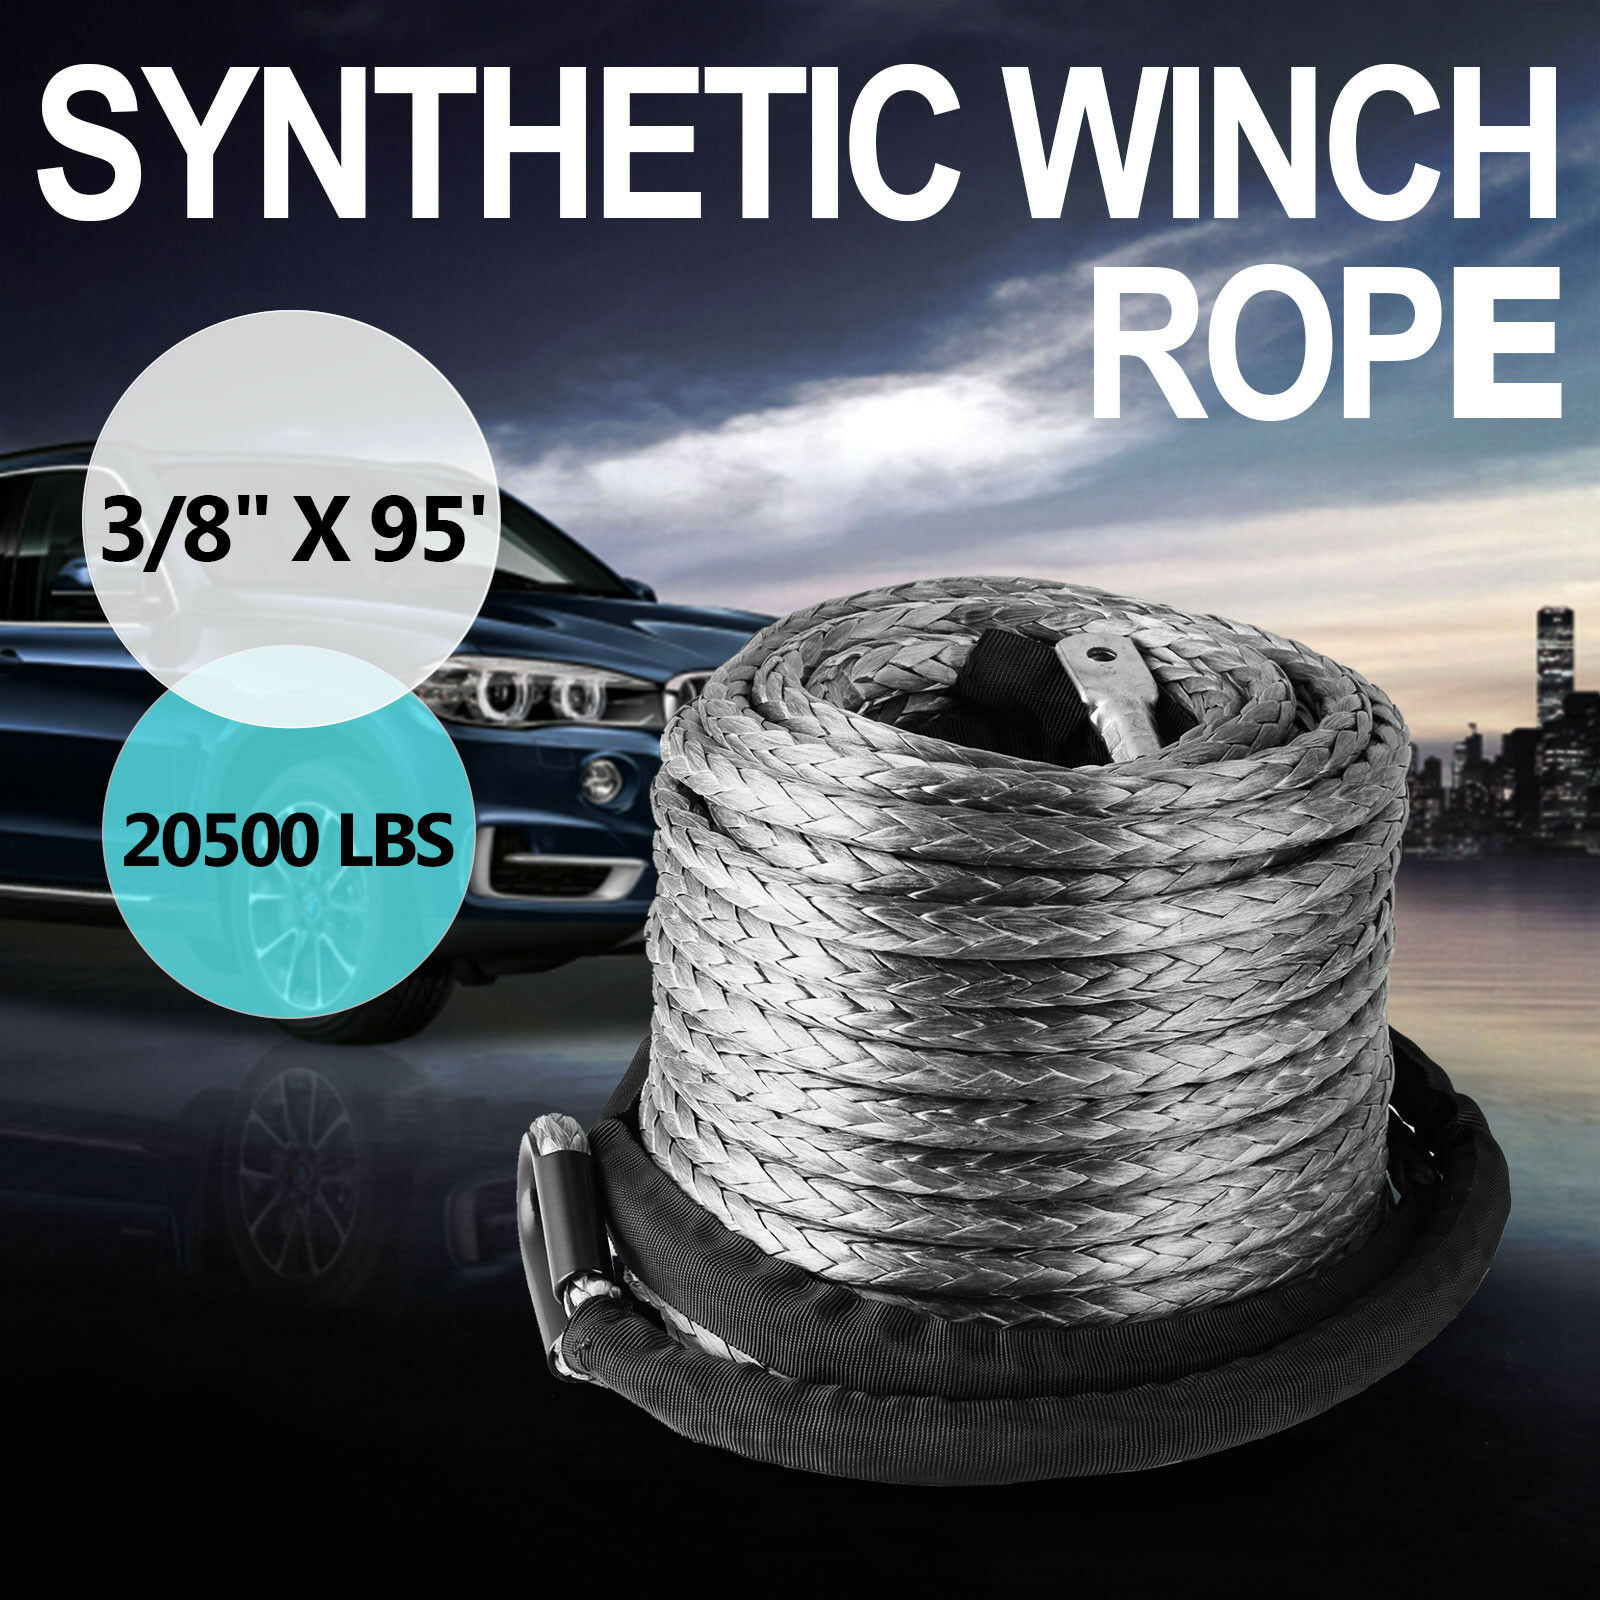 Winch Synthetic Line Cable Rope 20500 LBs Recovery W/ Thimble Sleeve 10mm 28m 9299kg